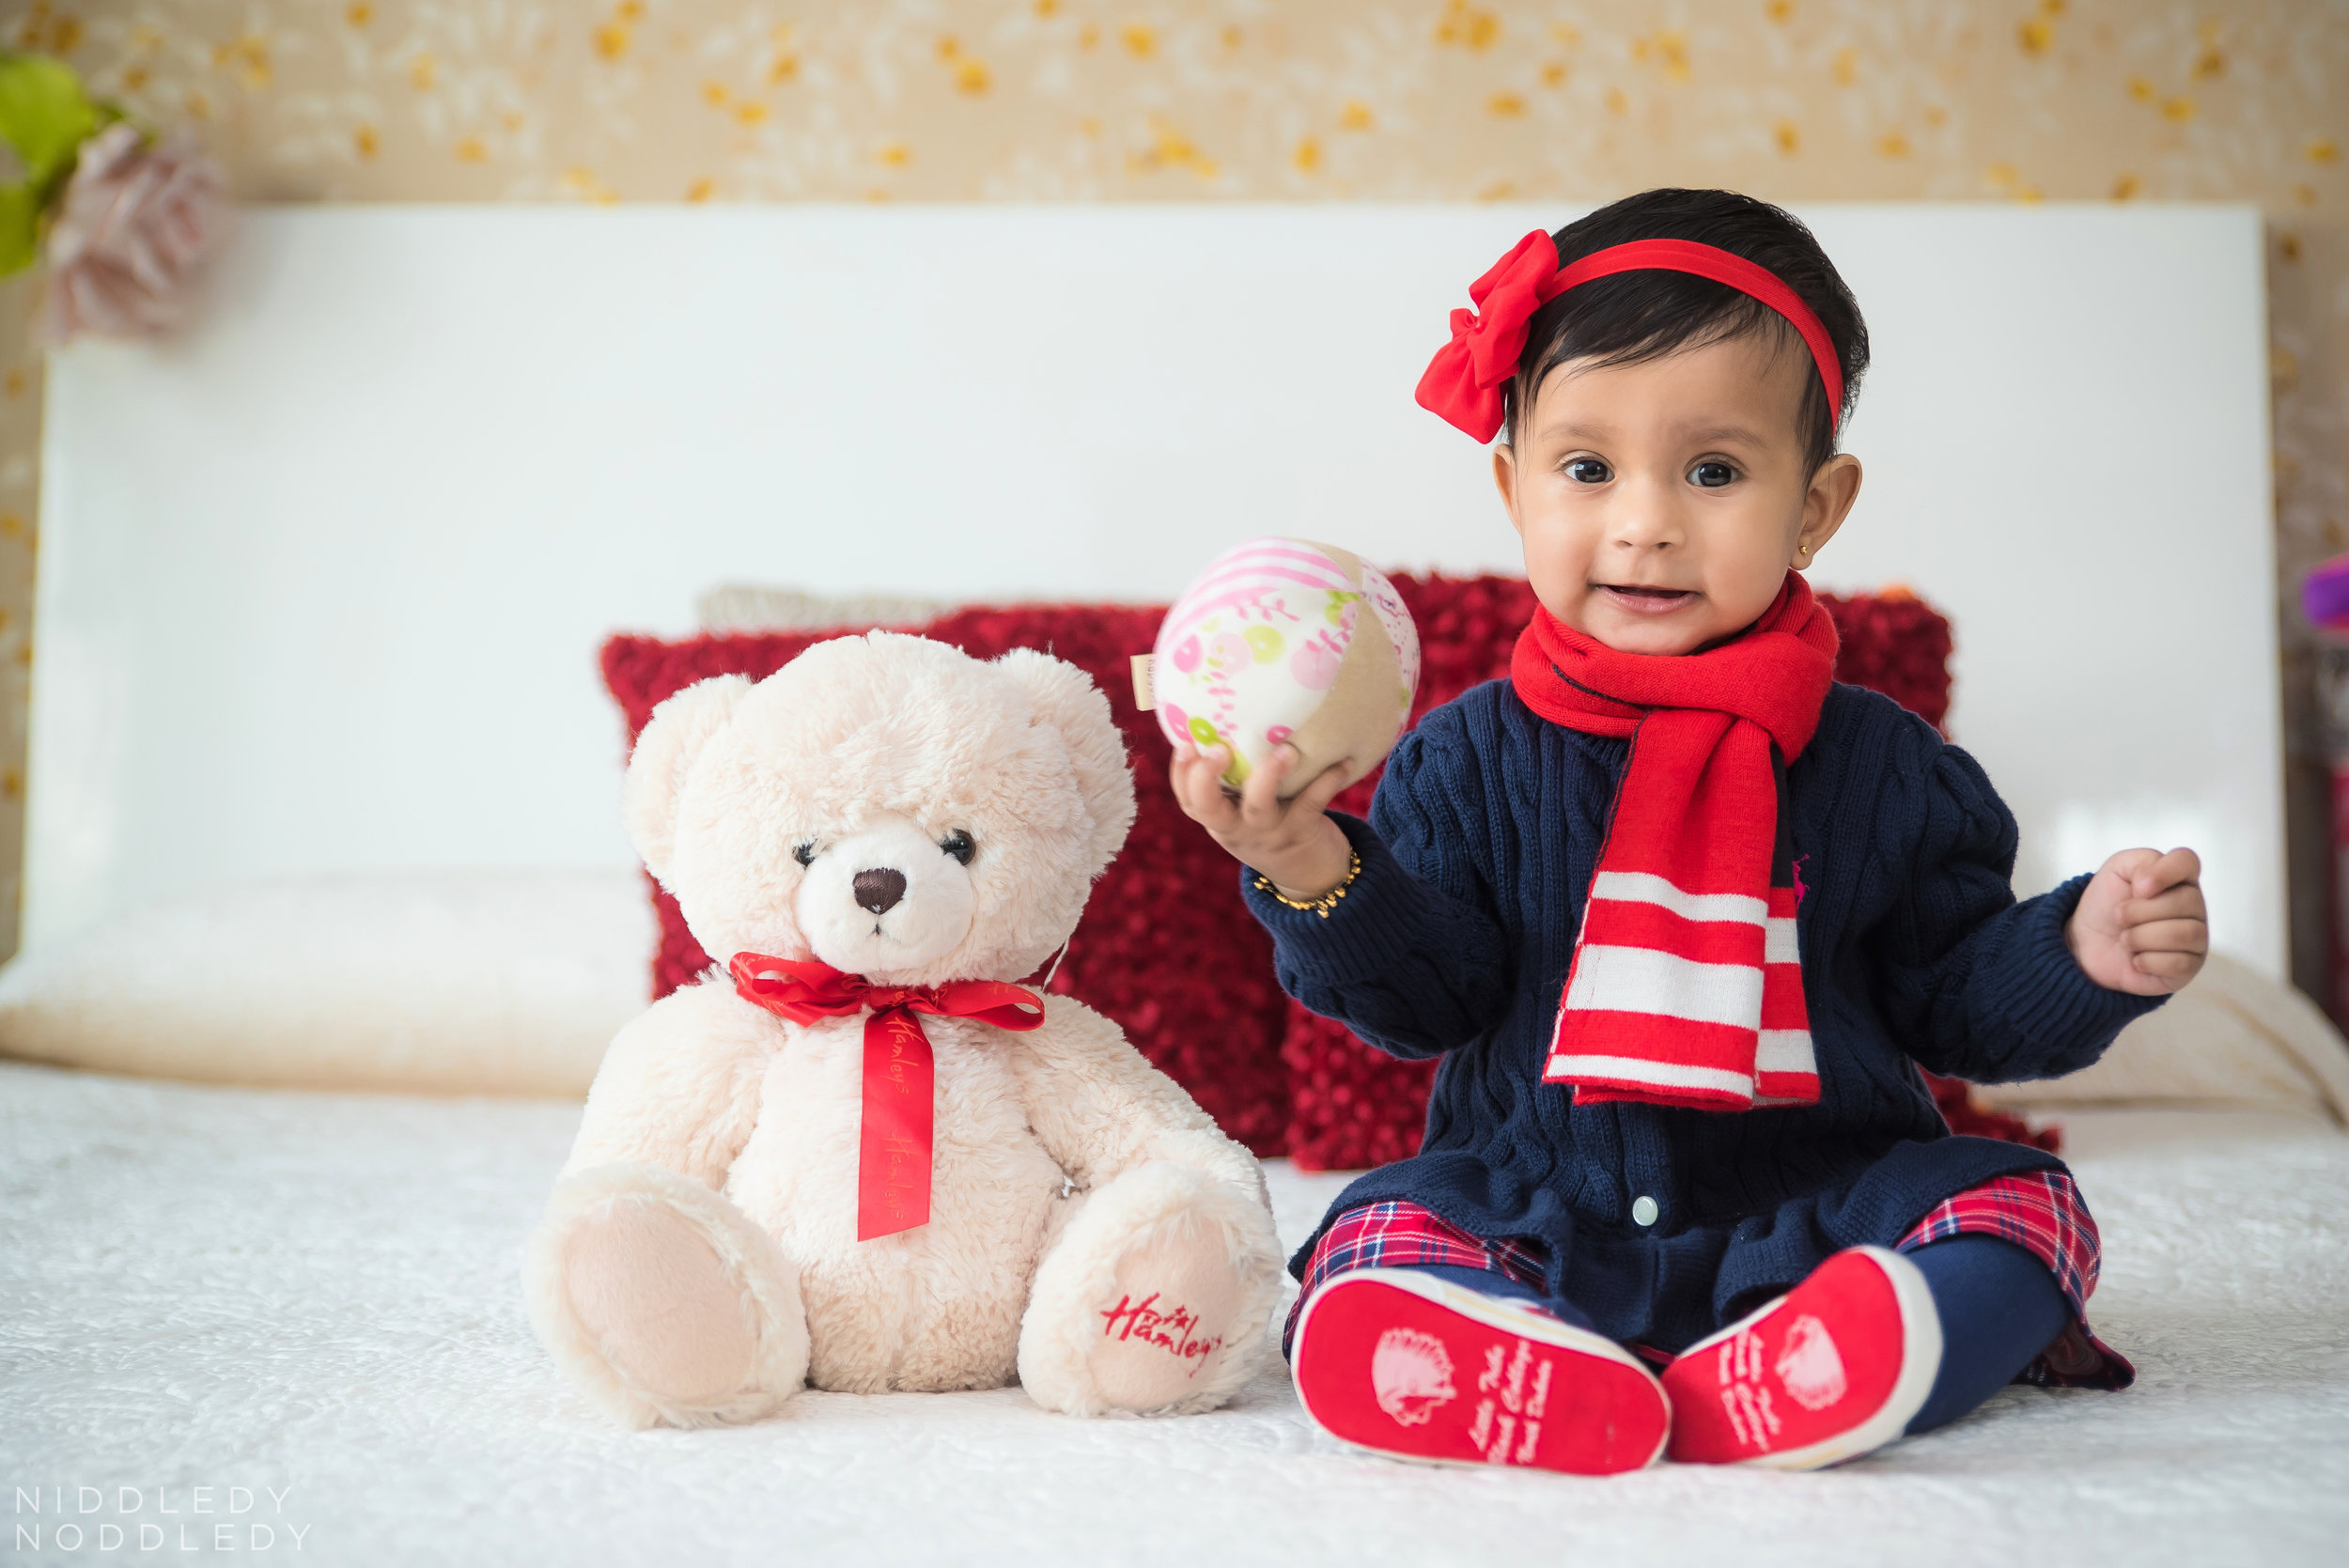 Anaisha Baby Photoshoot ❤ NiddledyNoddledy.com ~ Bumps to Babies Photography, Kolkata - 104.jpg